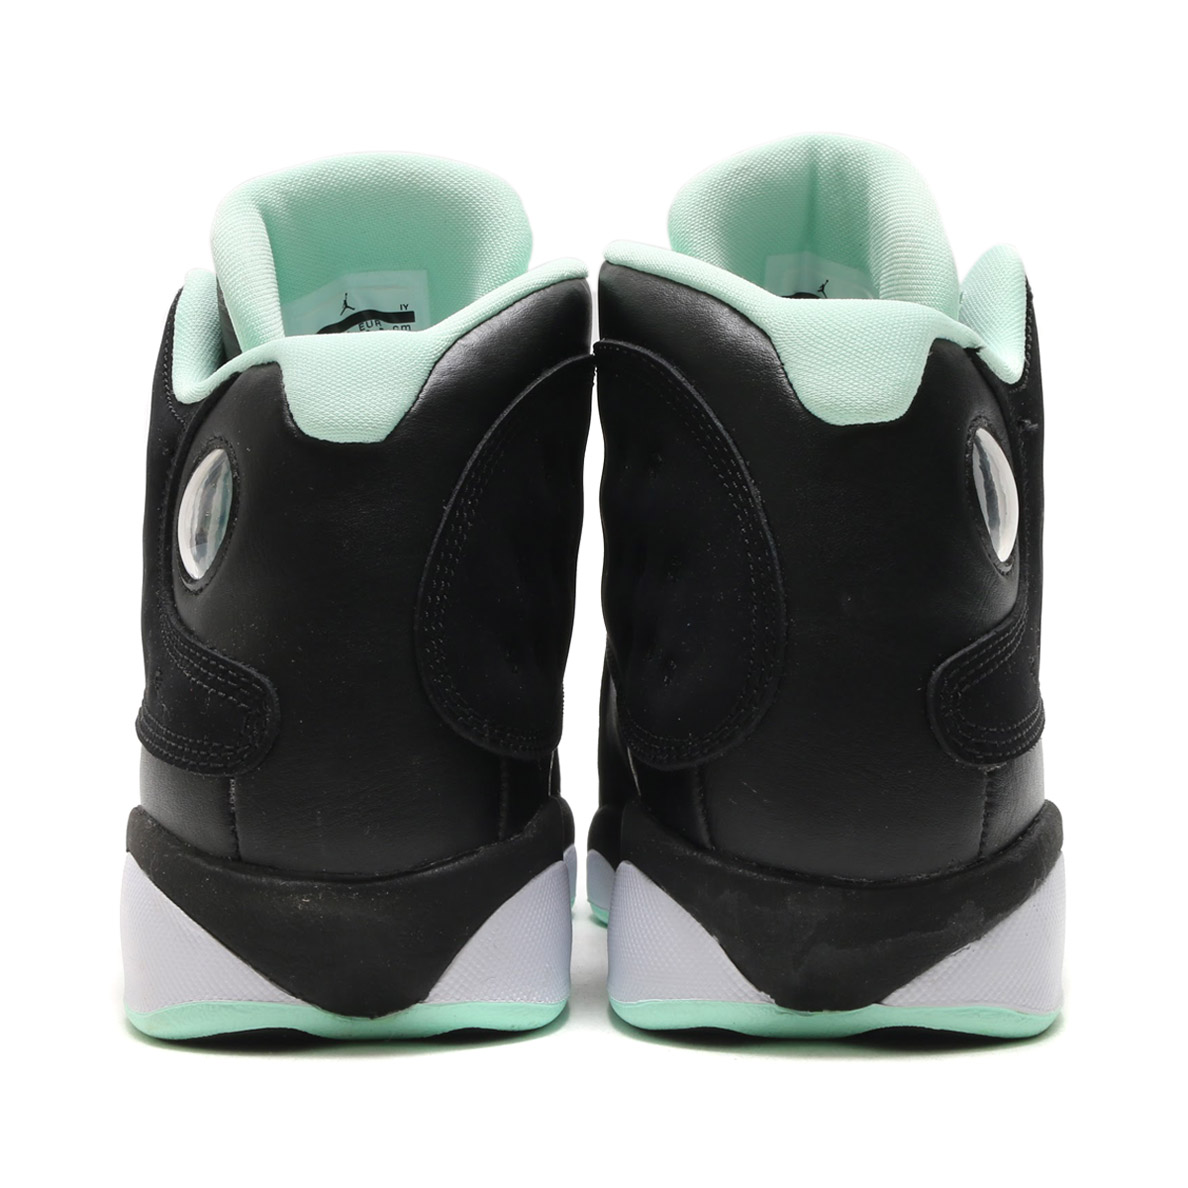 NIKE AIR JORDAN RETRO 13 GG (Nike girls Air Jordan 13 nostalgic GG)  (BLACK METALLIC GOLD-MINT FOAM-WHITE) 17FA-S 702140ee77